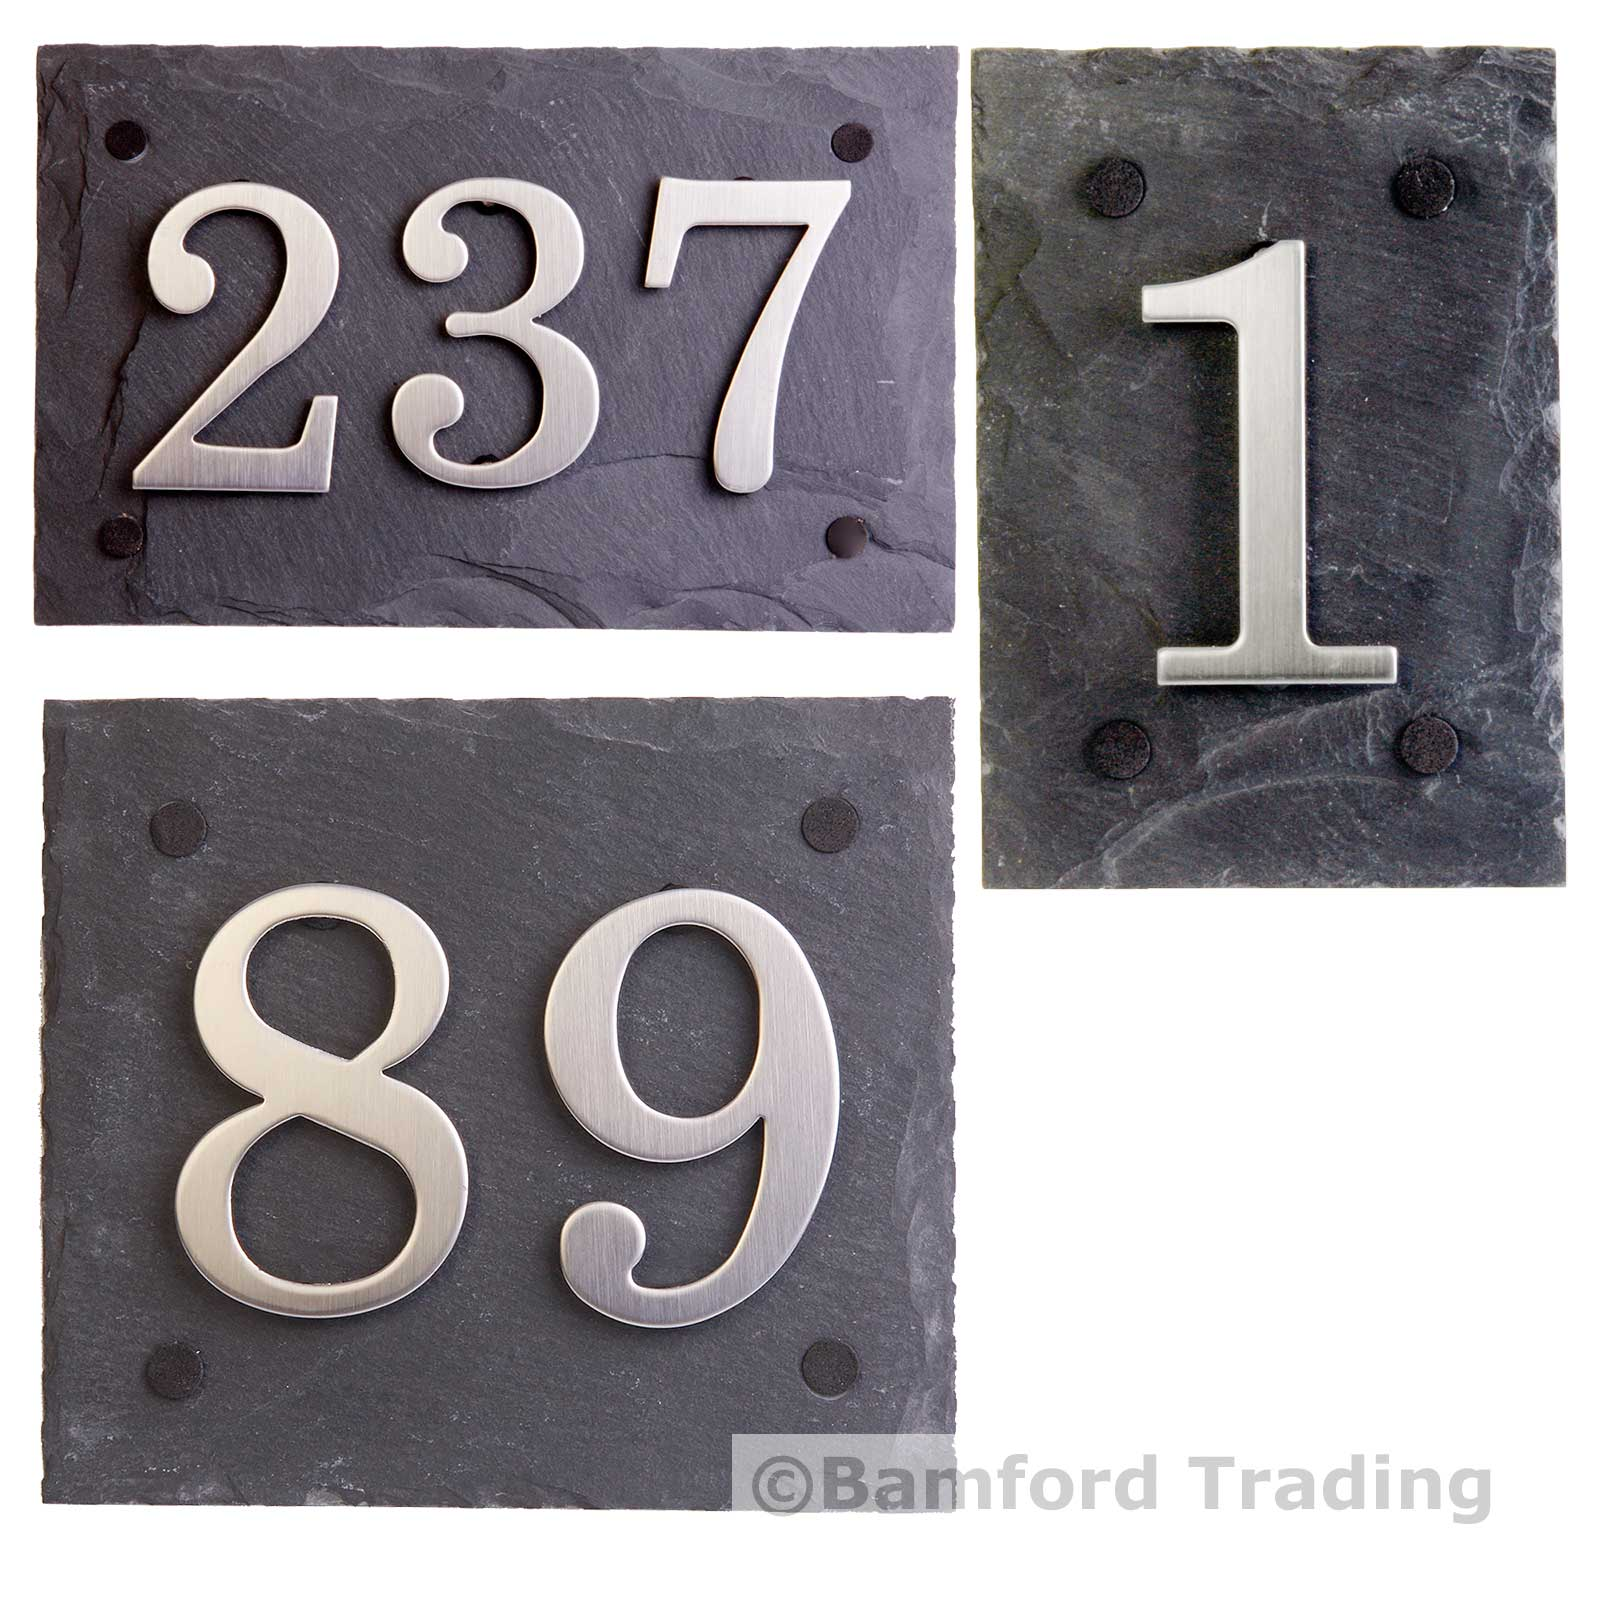 Natural Slate Door/House Number Plaques With Choice Of Stainless Steel  Digits